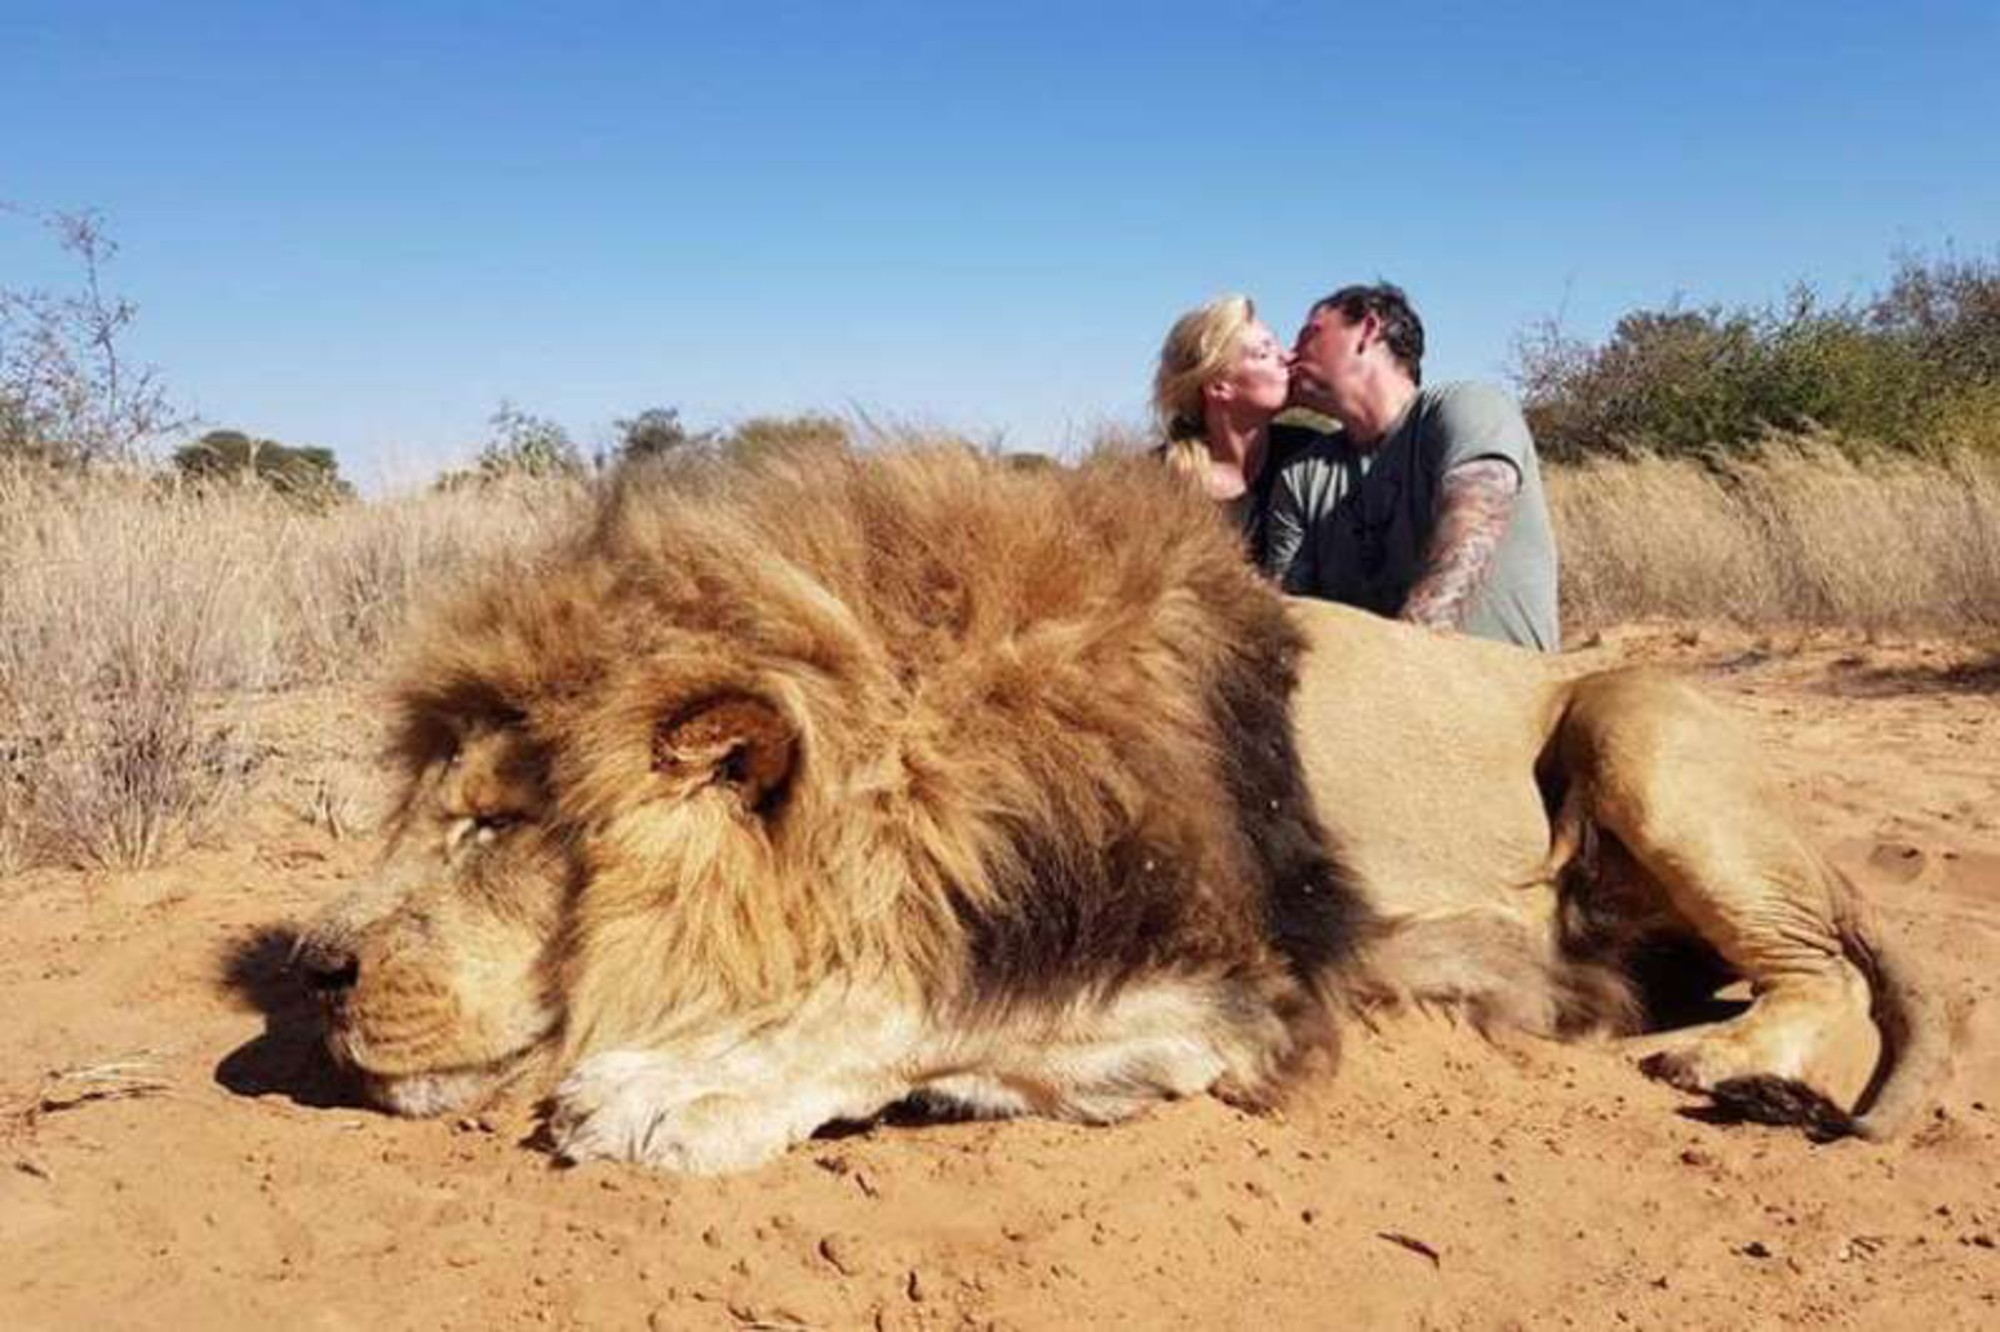 Canadian couple shamed for taking kiss photo over dead lion